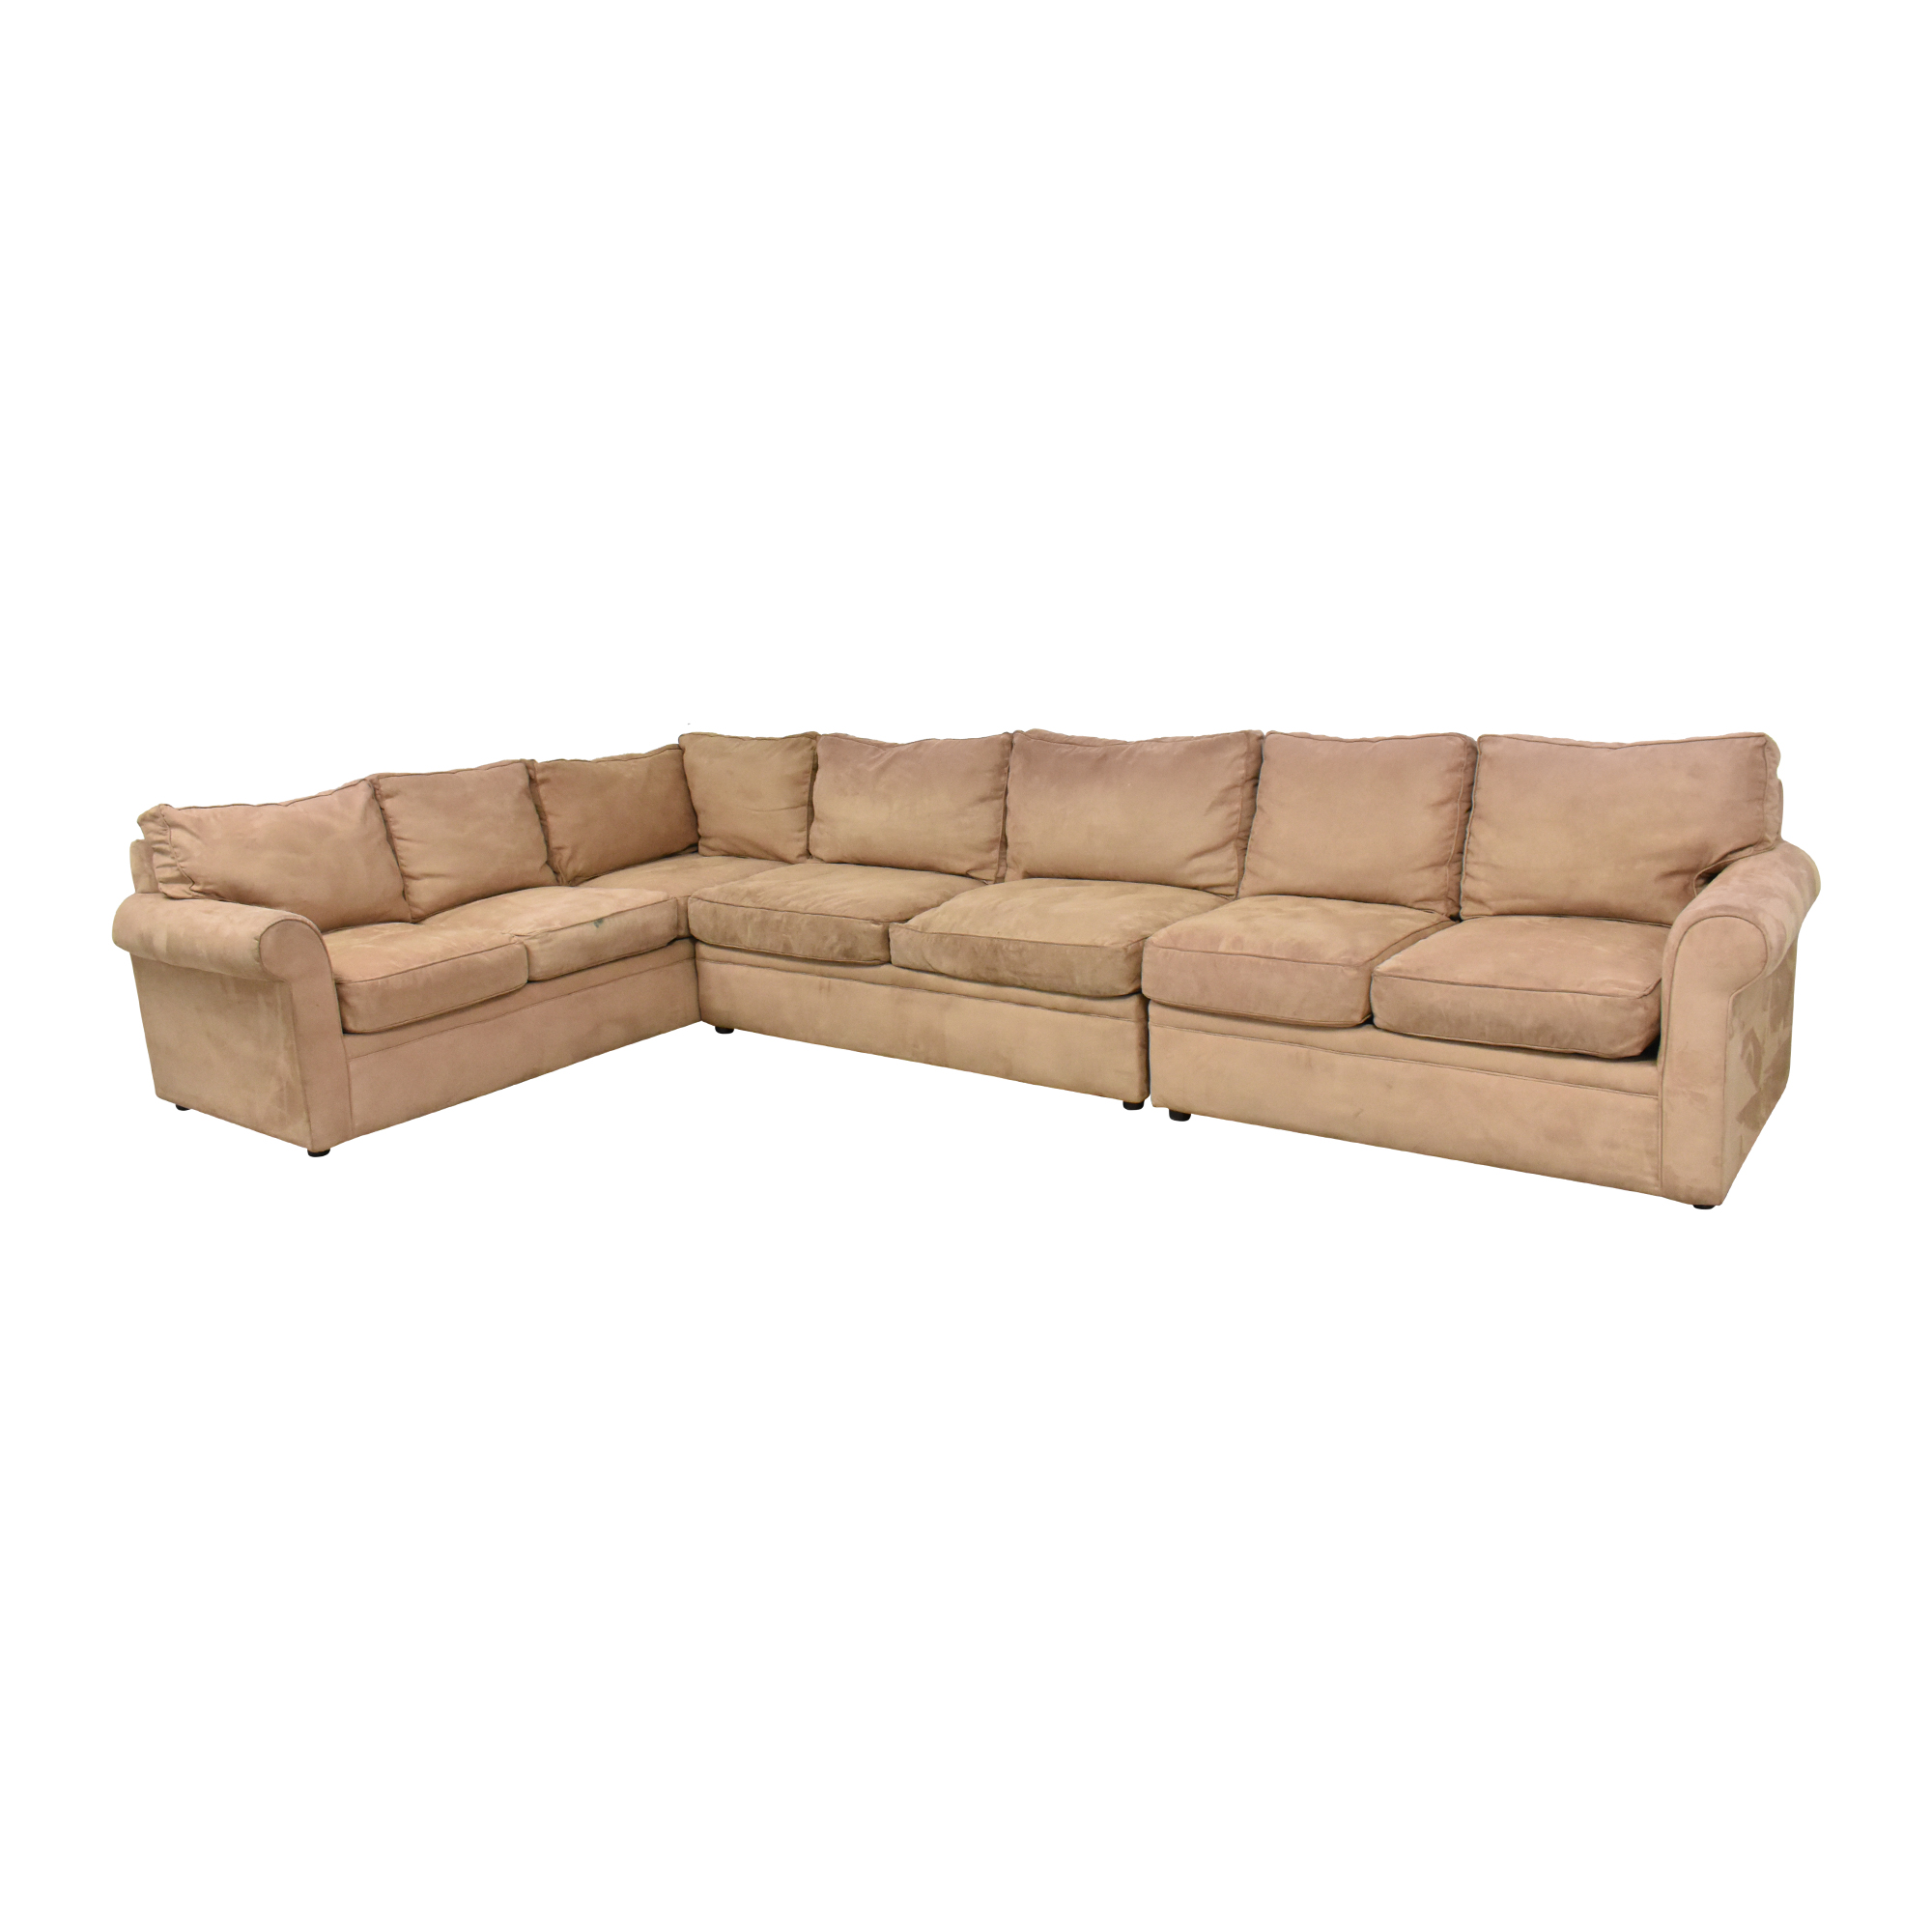 Rowe Furniture Corner Sectional Sofa / Sectionals